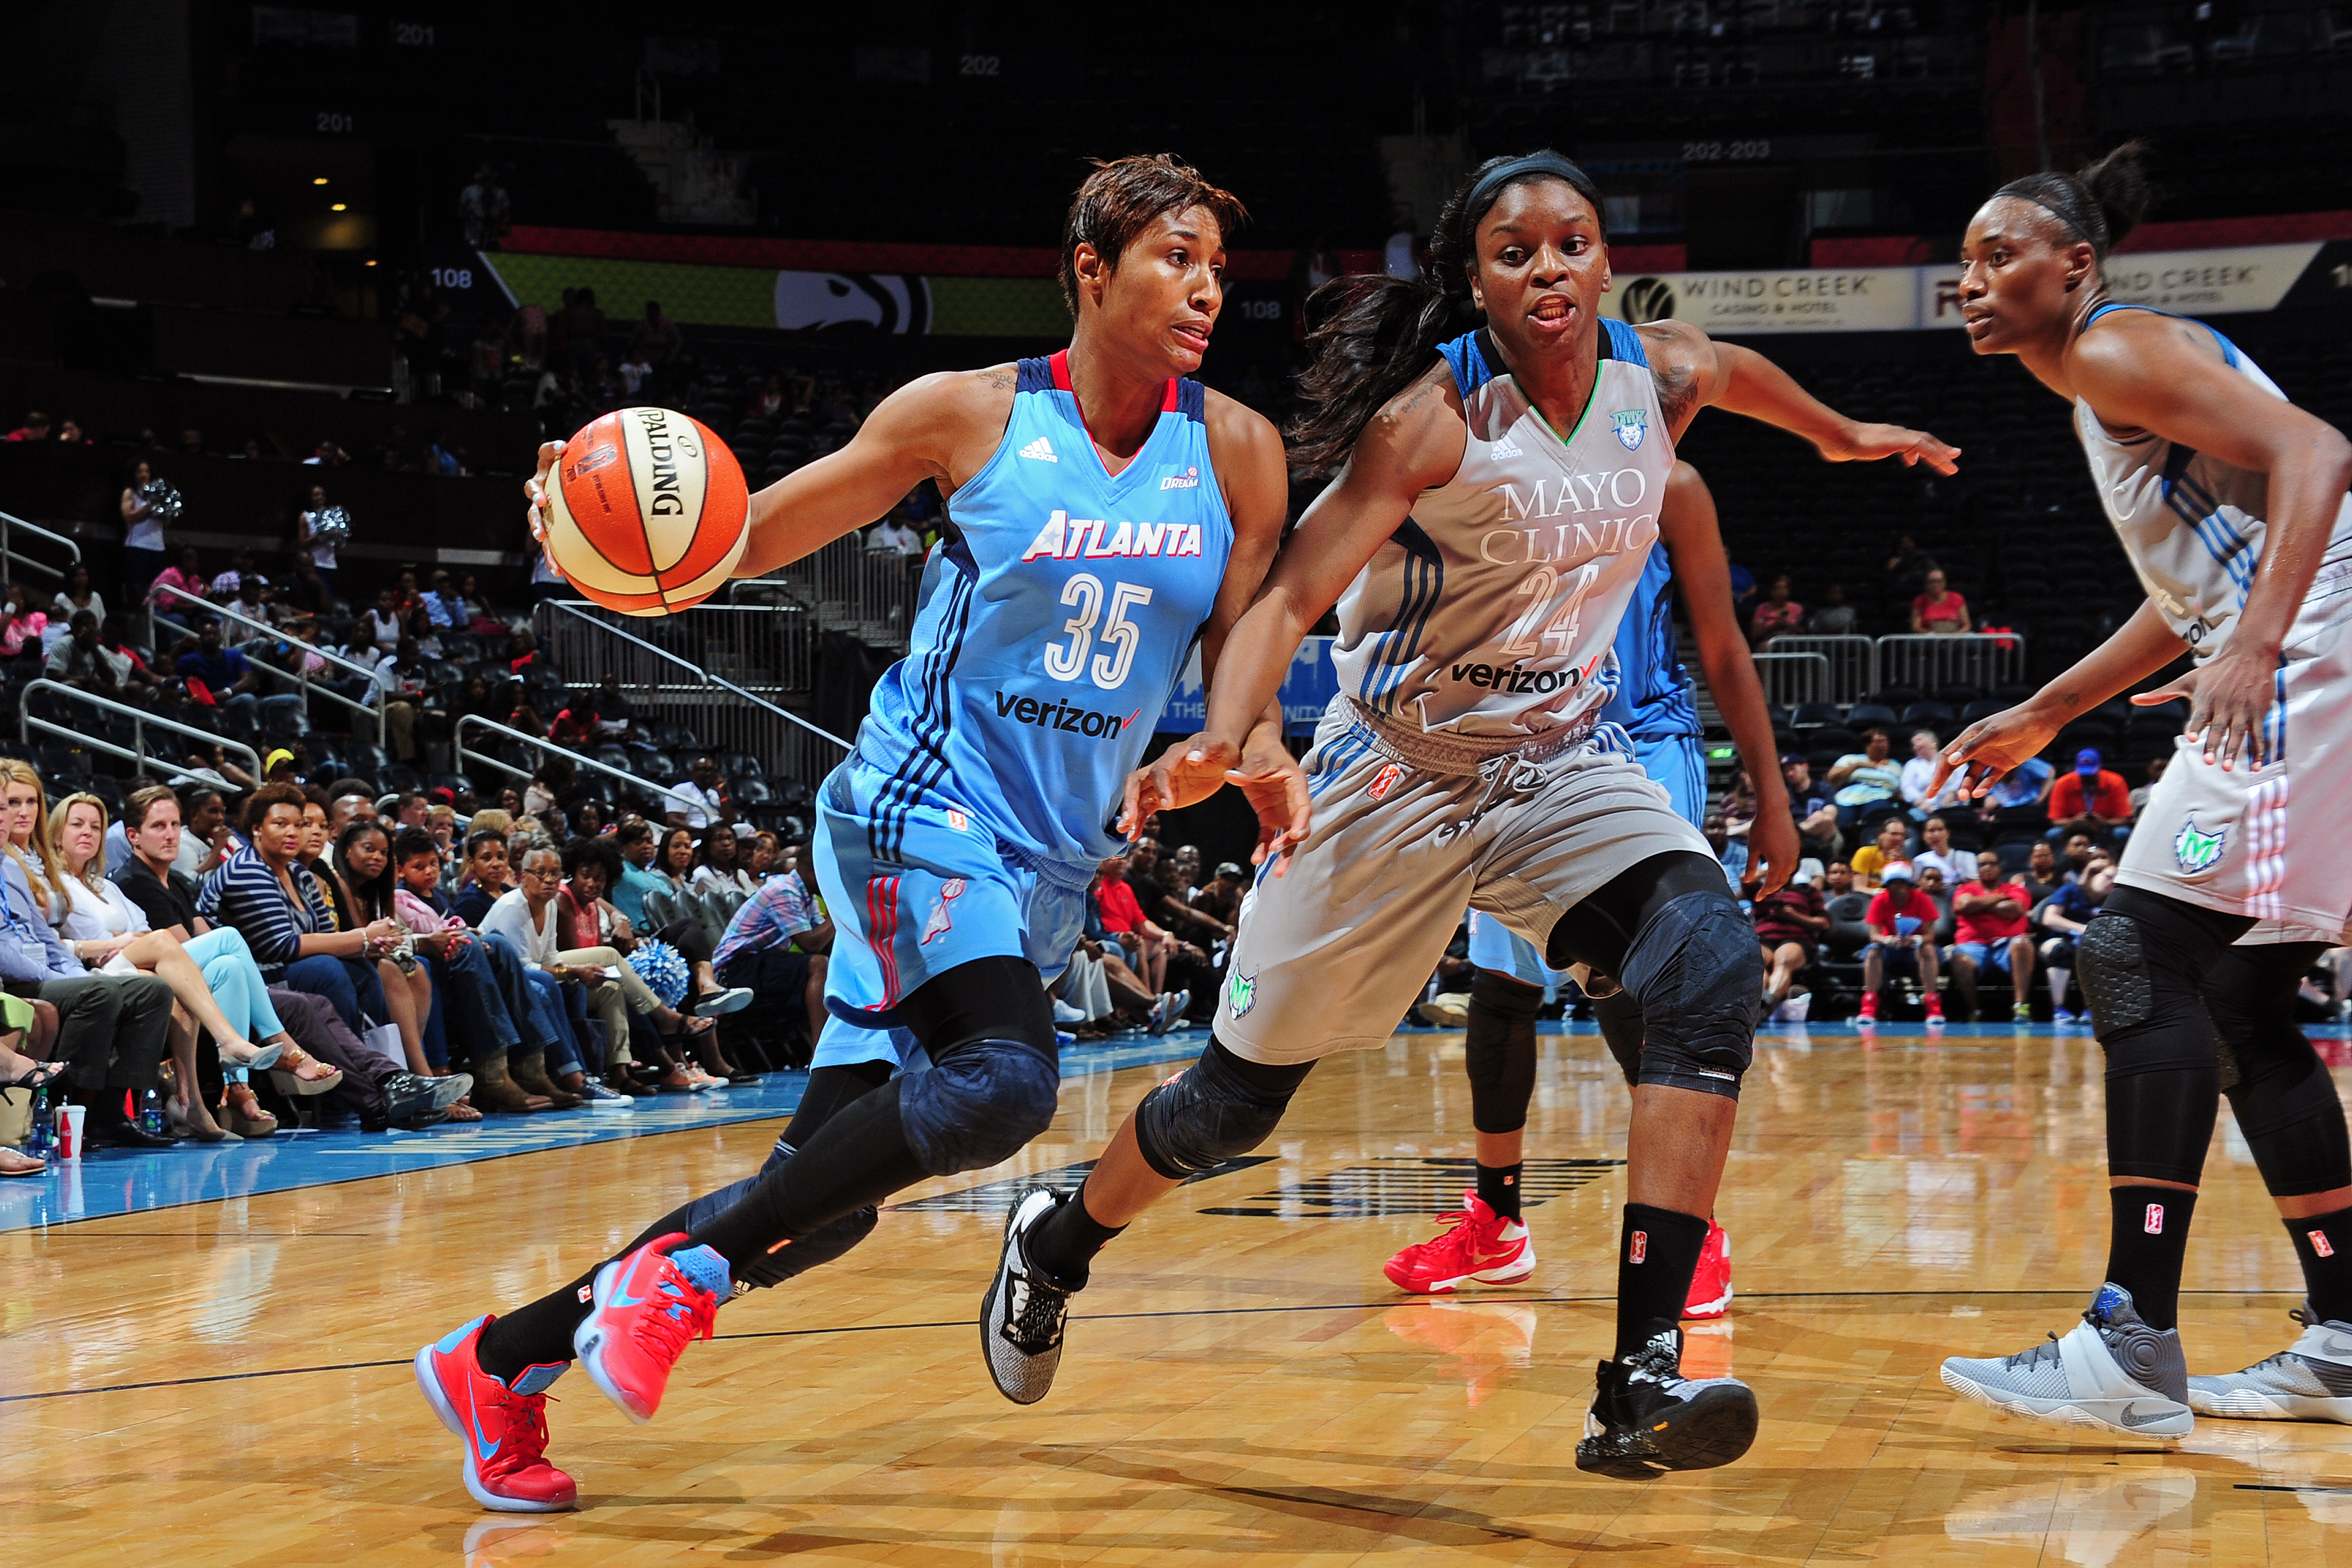 ATLANTA, GA - JUNE 10: Angel McCoughtry #35 of the Atlanta Dream drives to the basket during the game against the Minnesota Lynx during a WNBA game on June 10, 2016 at Philips Arena in Atlanta, Georgia. NOTE TO USER: User expressly acknowledges and agrees that, by downloading and/or using this Photograph, user is consenting to the terms and conditions of the Getty Images License Agreement. Mandatory Copyright Notice: Copyright 2016 NBAE (Photo by Scott Cunningham/NBAE via Getty Images)